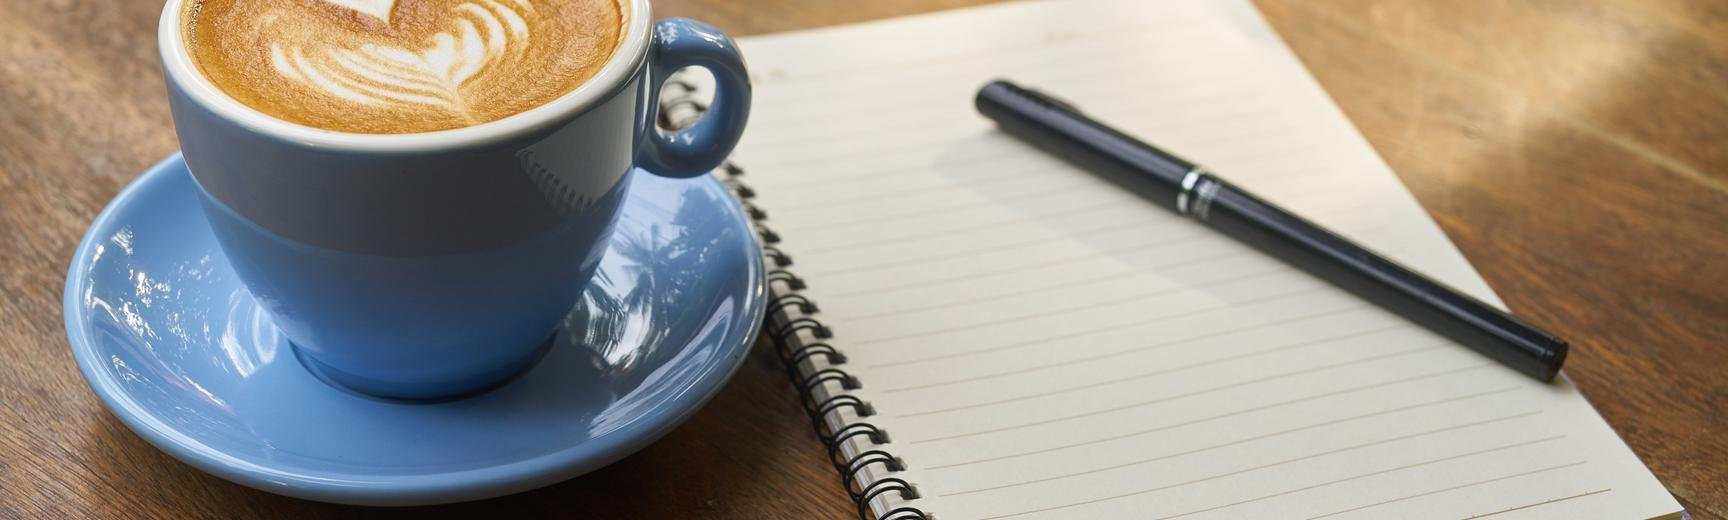 Writing notes and drinking coffee